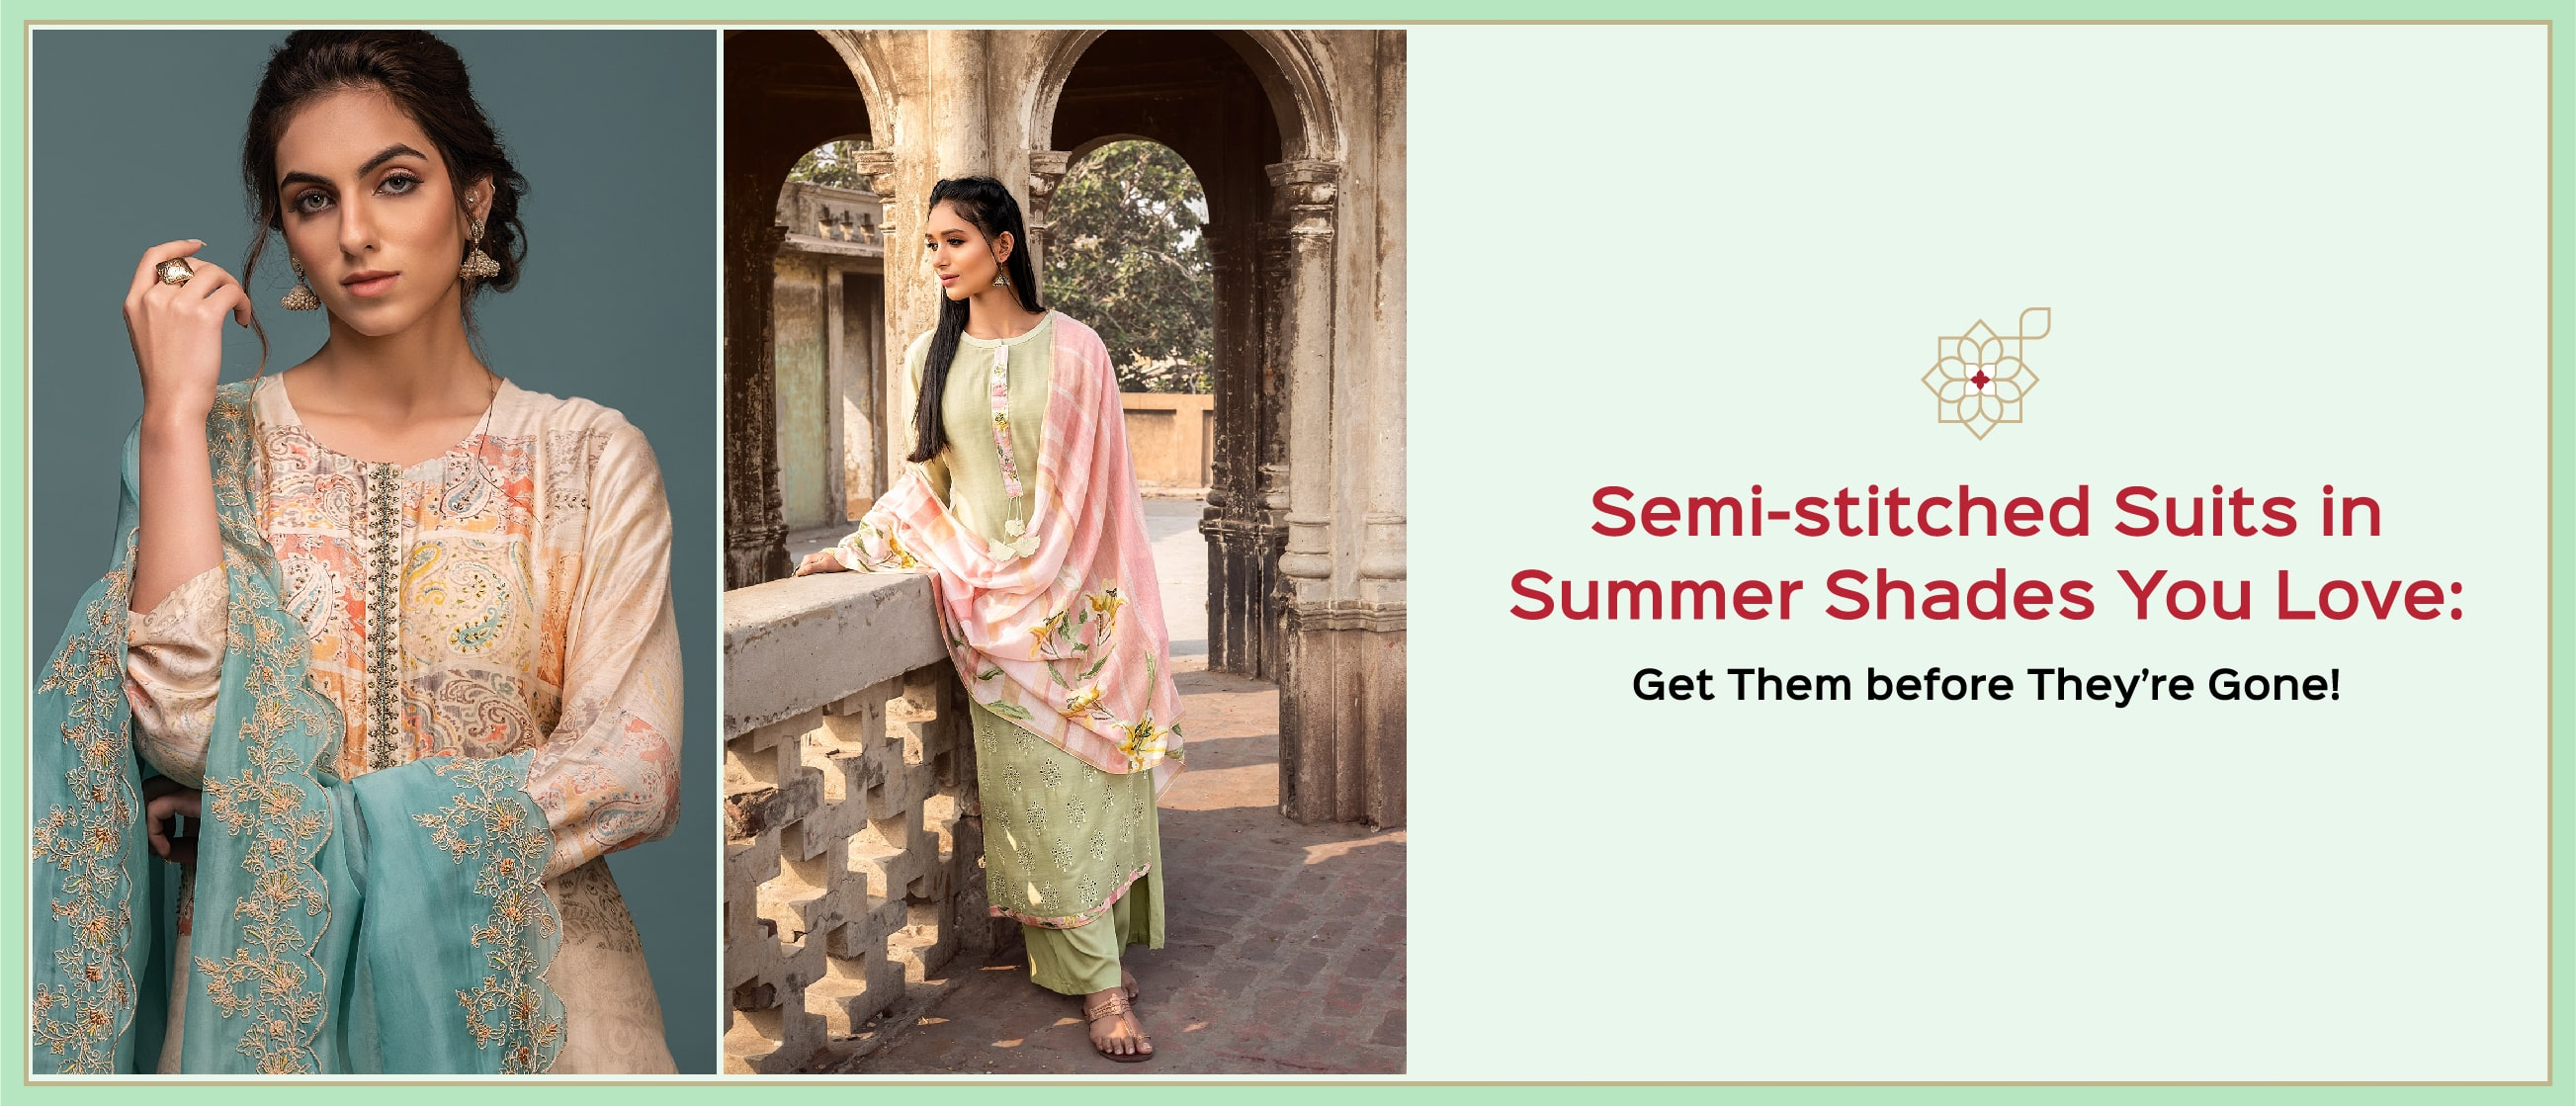 Semi-stitched Suits in Summer Shades You Love: Get Them before They're Gone!